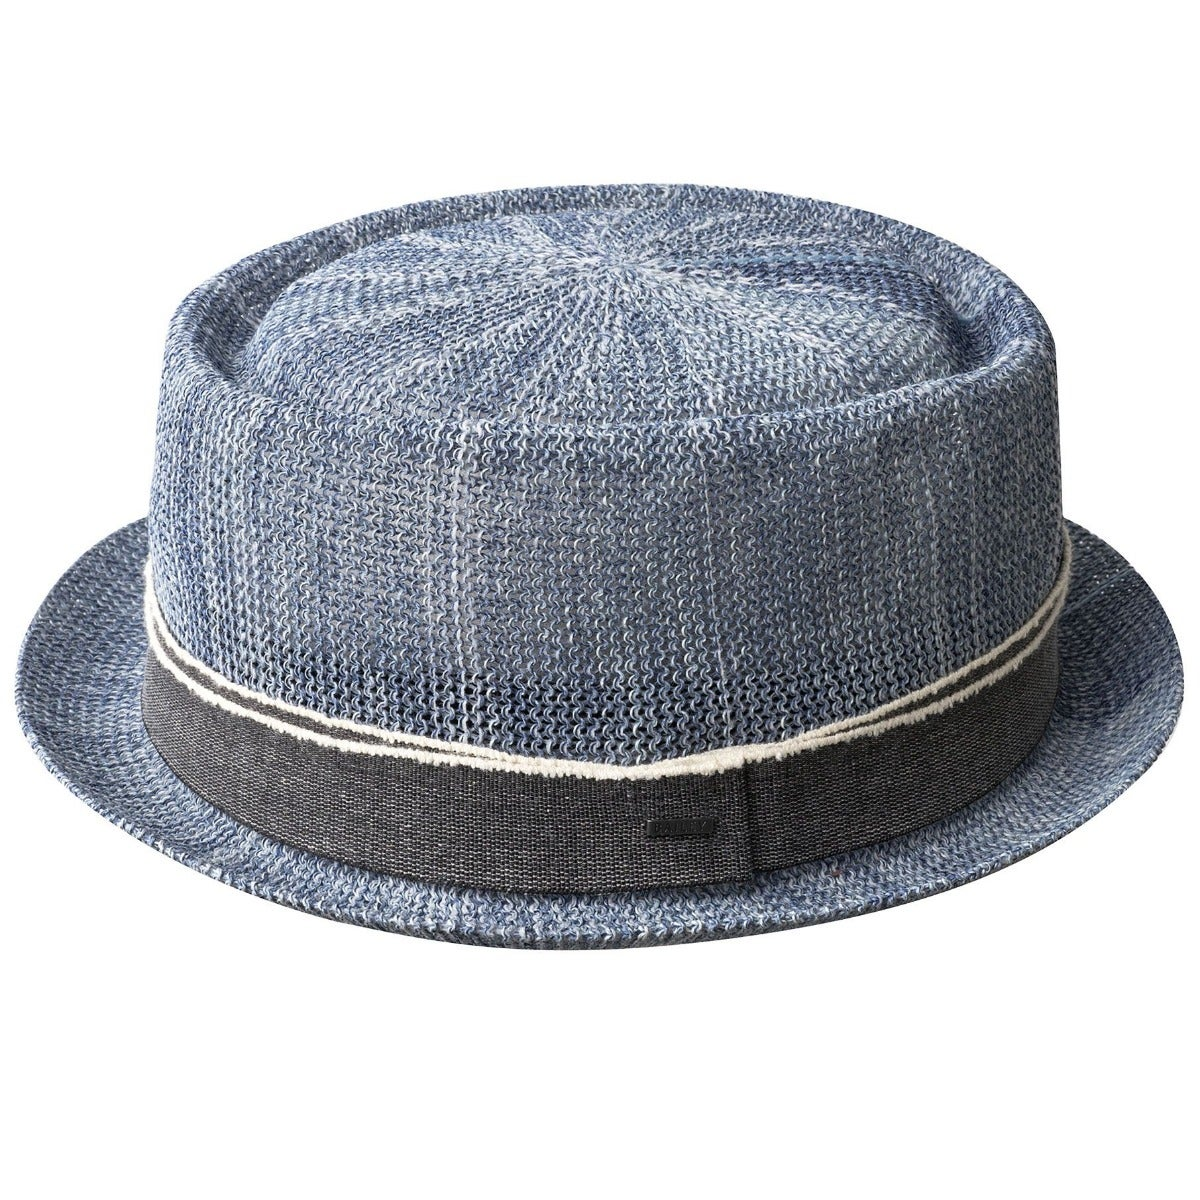 1950s Mens Hats | 50s Vintage Men's Hats Runkle Straw Pork Pie $80.00 AT vintagedancer.com